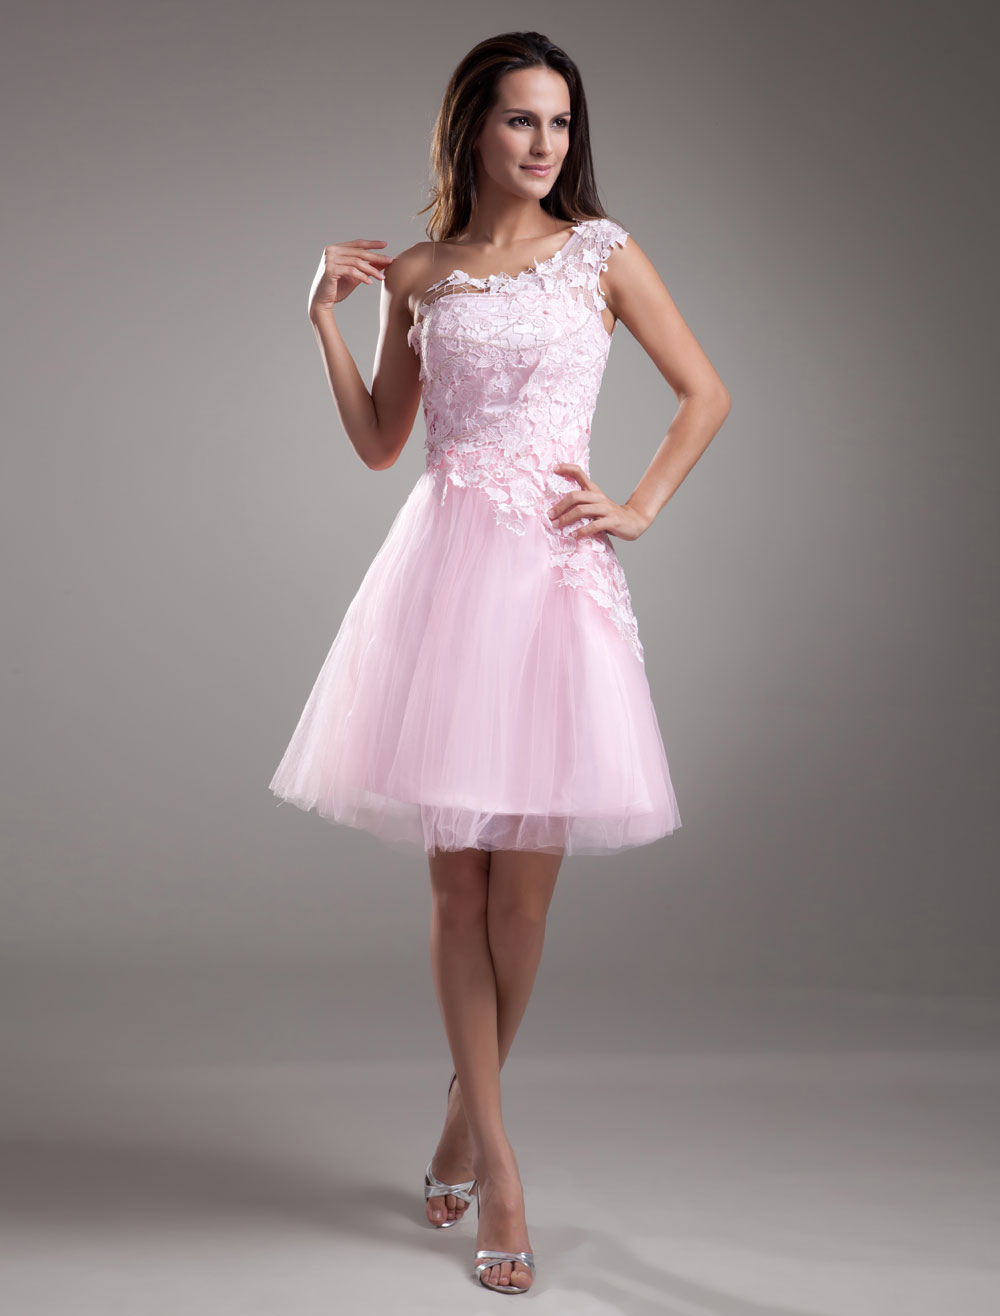 Pink Homecoming Dress One-Shoulder Lace Tulle Dress Wedding Guest Dress photo